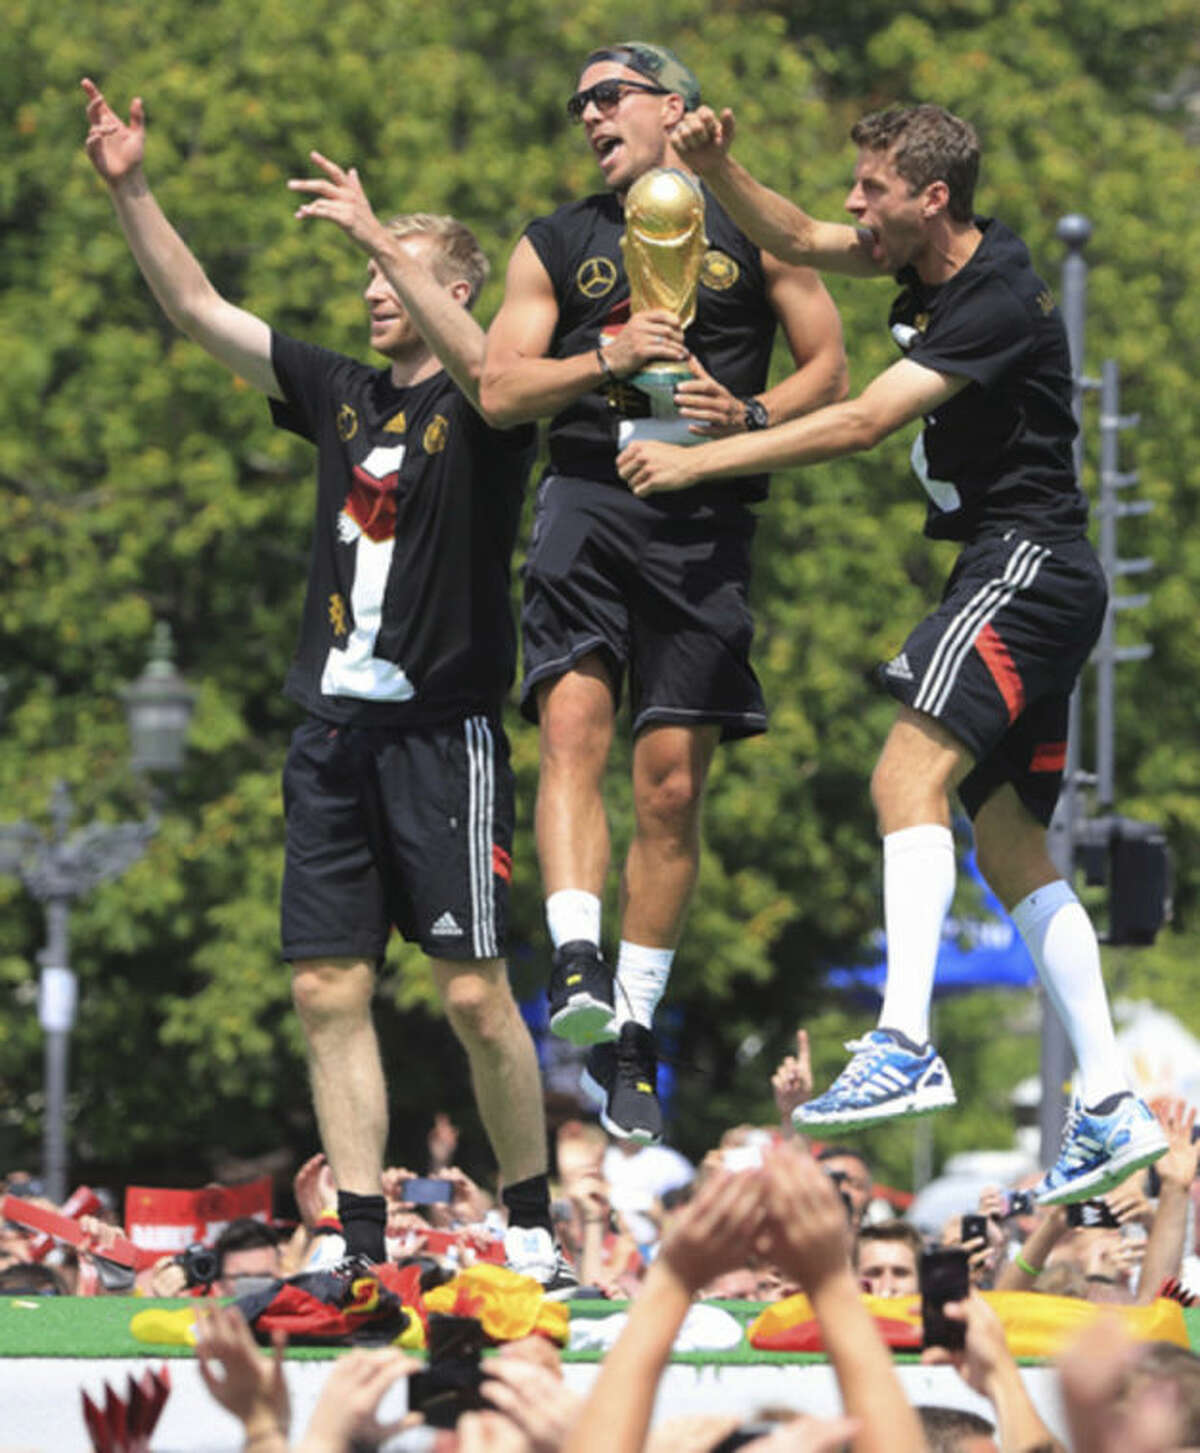 German national soccer players from left: Per Mertesacker , Lukas Podolski and Thomas Mueller celebrate near Brandenburg Gate in Berlin, Tuesday July 15, 2014. Germany's World Cup winners shared their fourth title with hundreds of thousands of fans by parading the trophy through cheering throngs to celebrate at the Brandenburg Gate on Tuesday. An estimated 400,000 people packed the